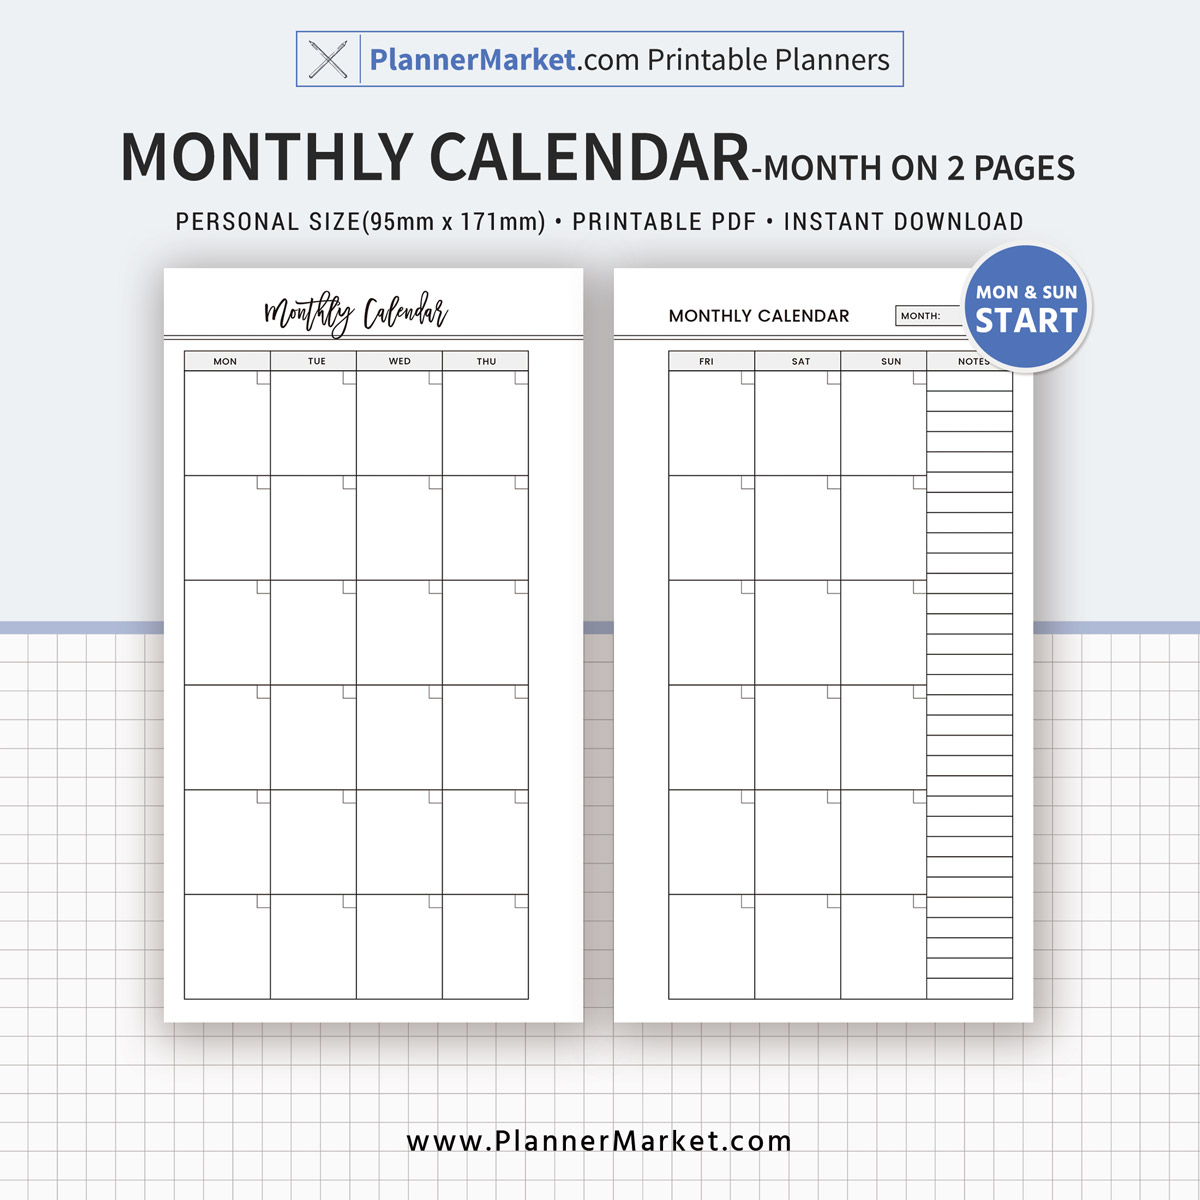 Monthly Calendar, Month On 2 Pages, 2018 Planner, Personal Size